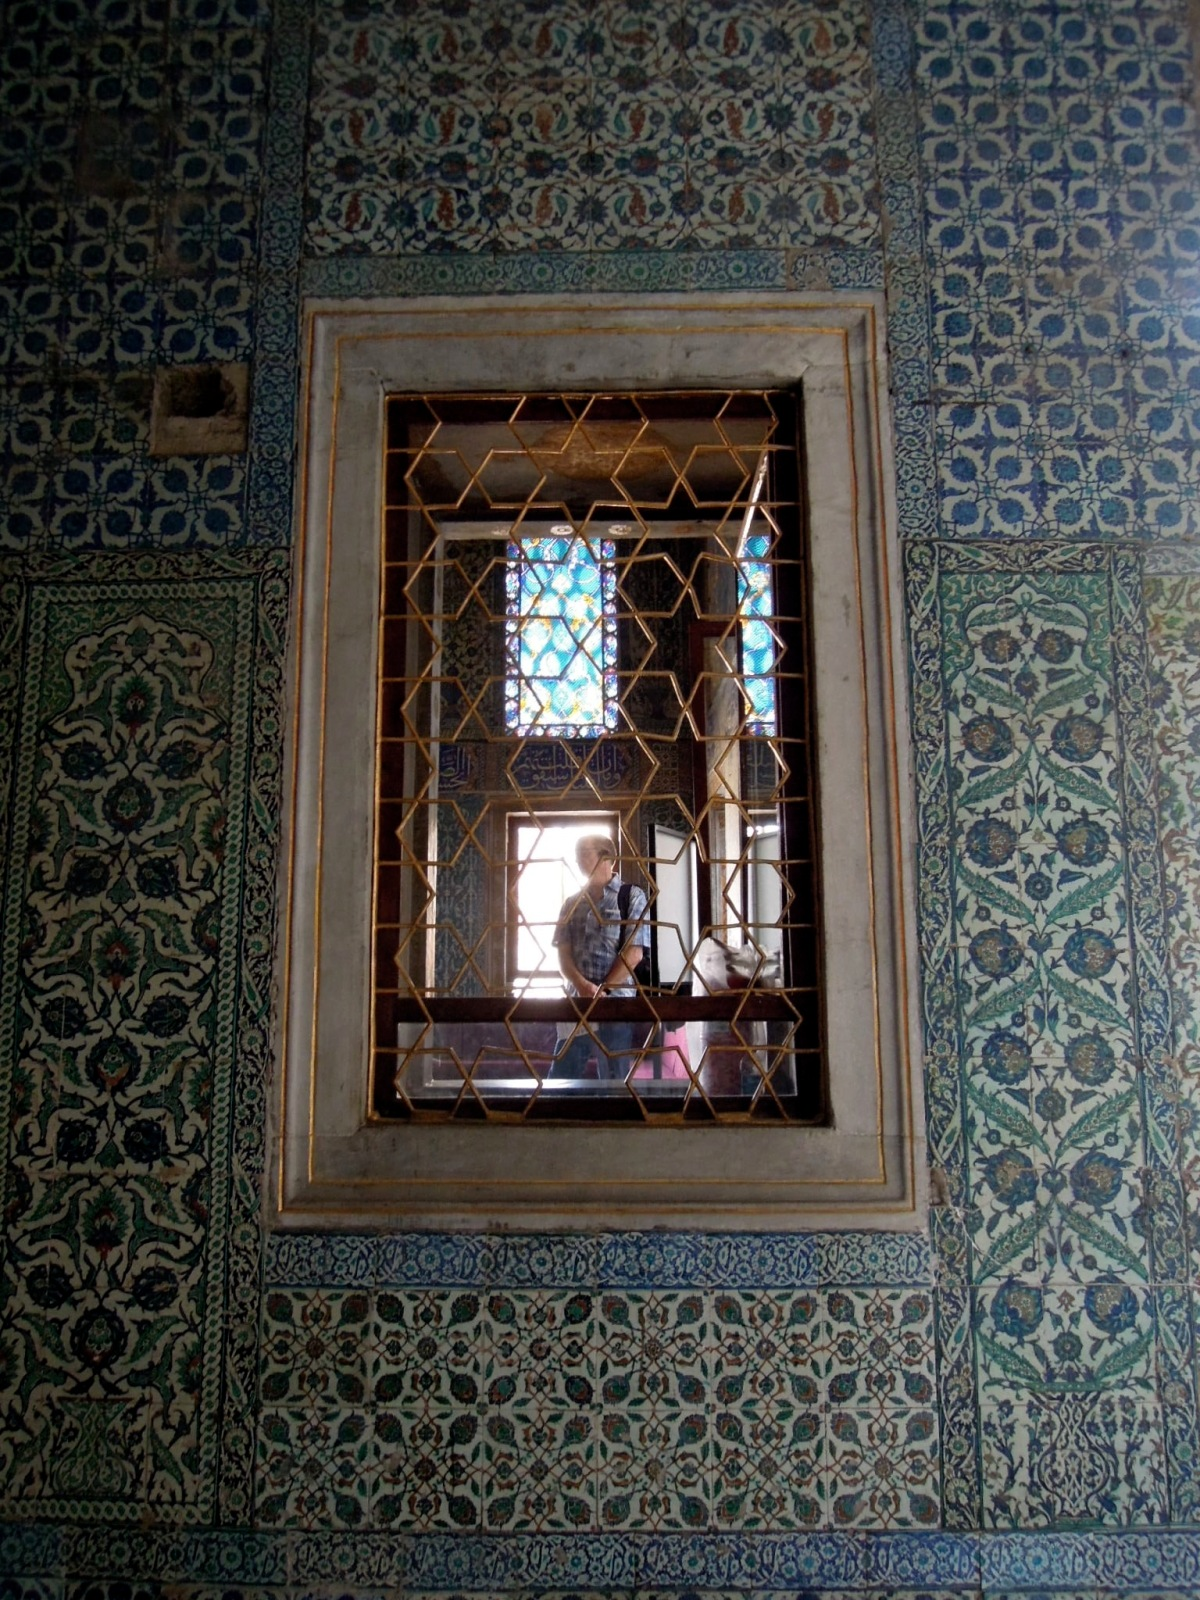 Window with star-patterned gold grille